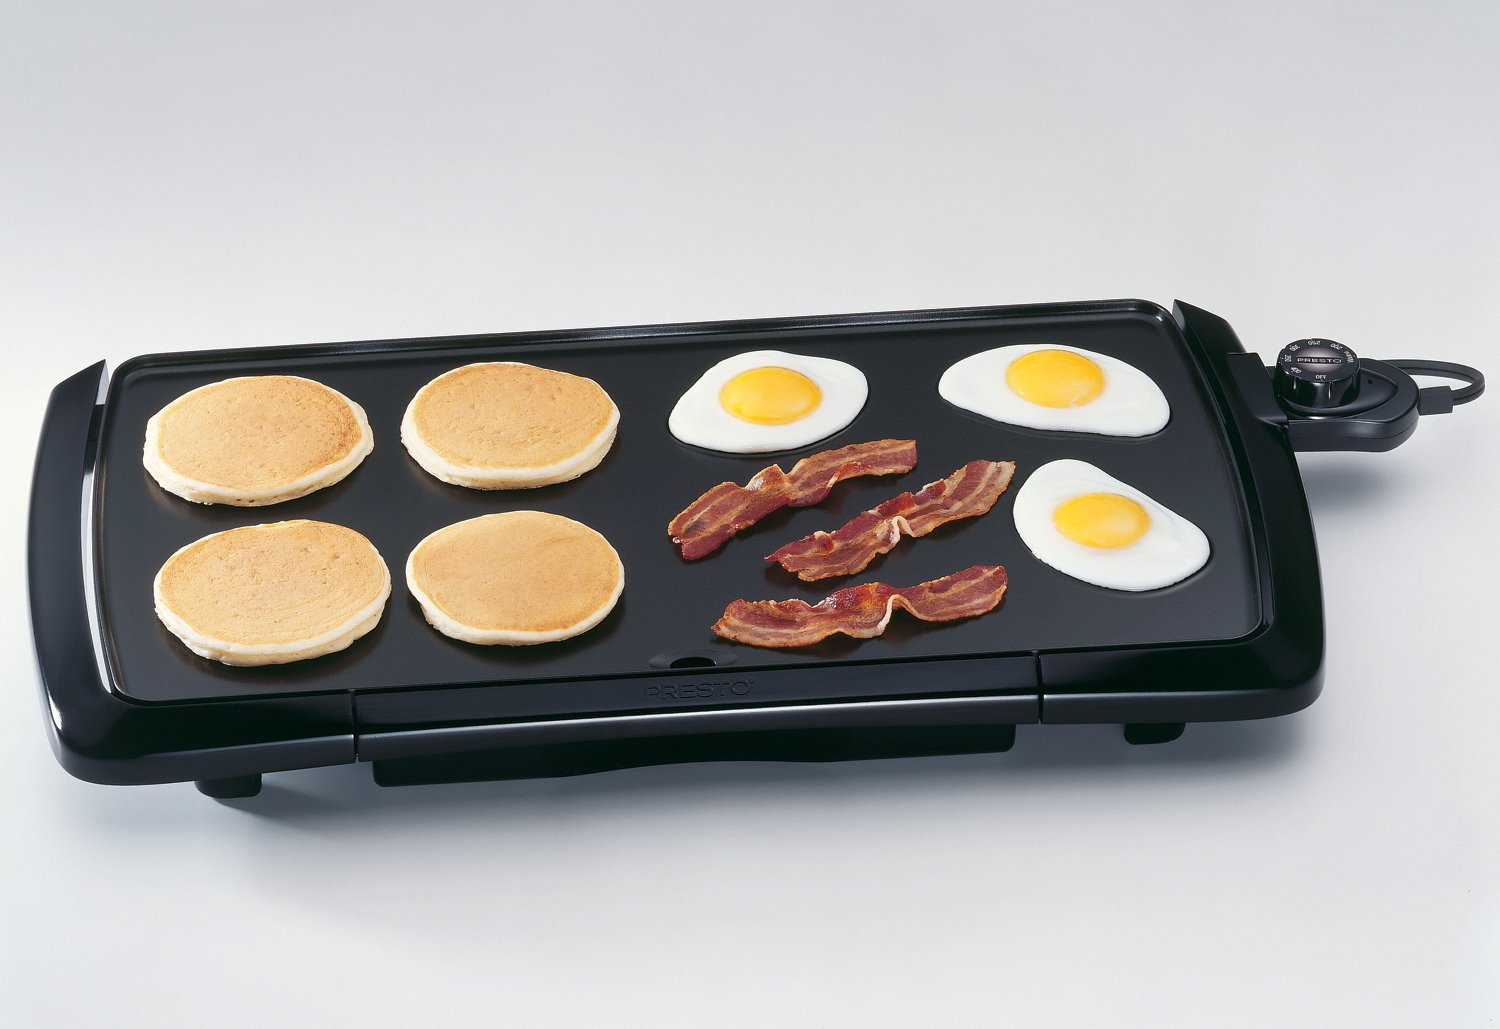 Great Quality Presto Electric Griddle only $19.99 on Amazon